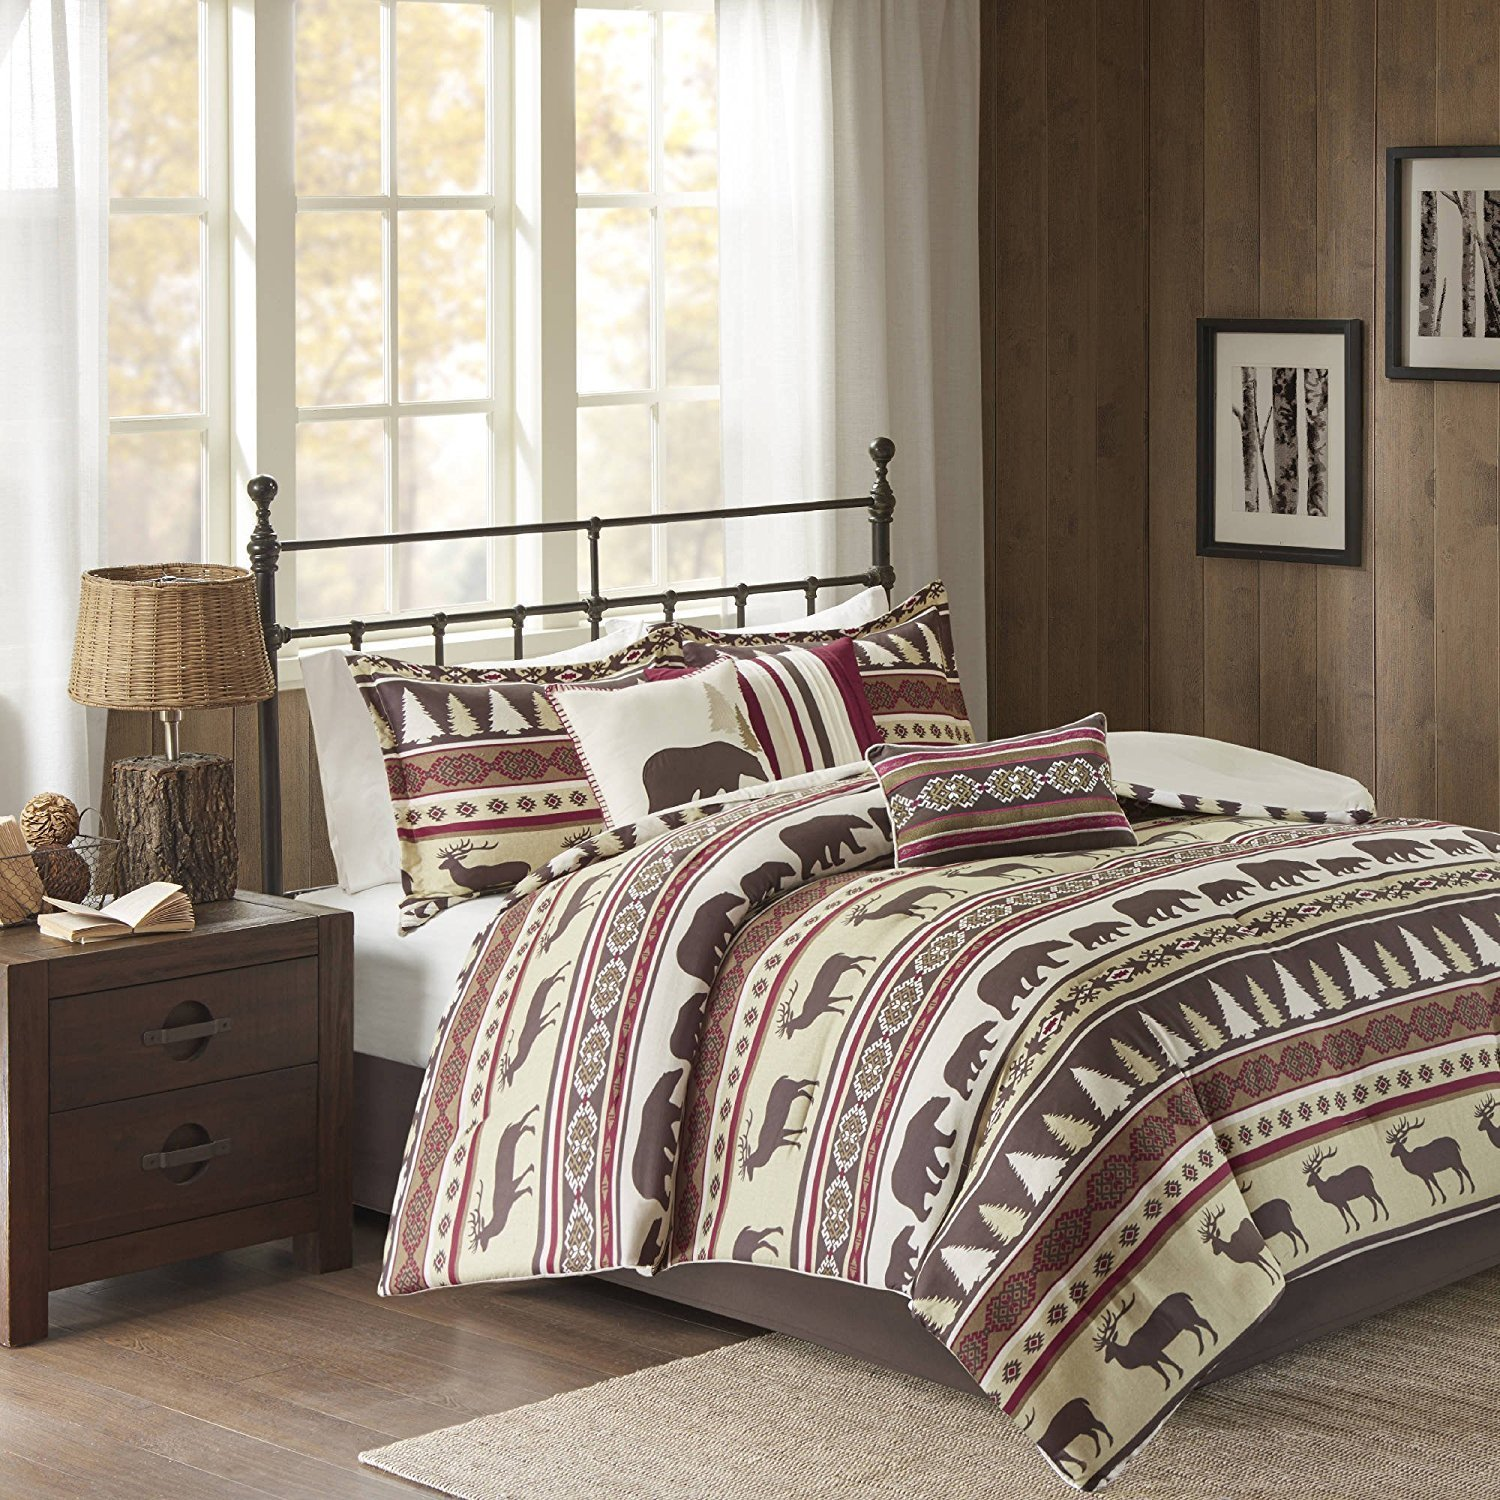 DP 7pc Red Tan Brown Southwest Nature Comforter Cal King Set, Horizontal Stripe Hunting Deer Bear Motif Bedding, Lodge Cabin South West Western Outdoors Native American Themed Pattern, Polyester